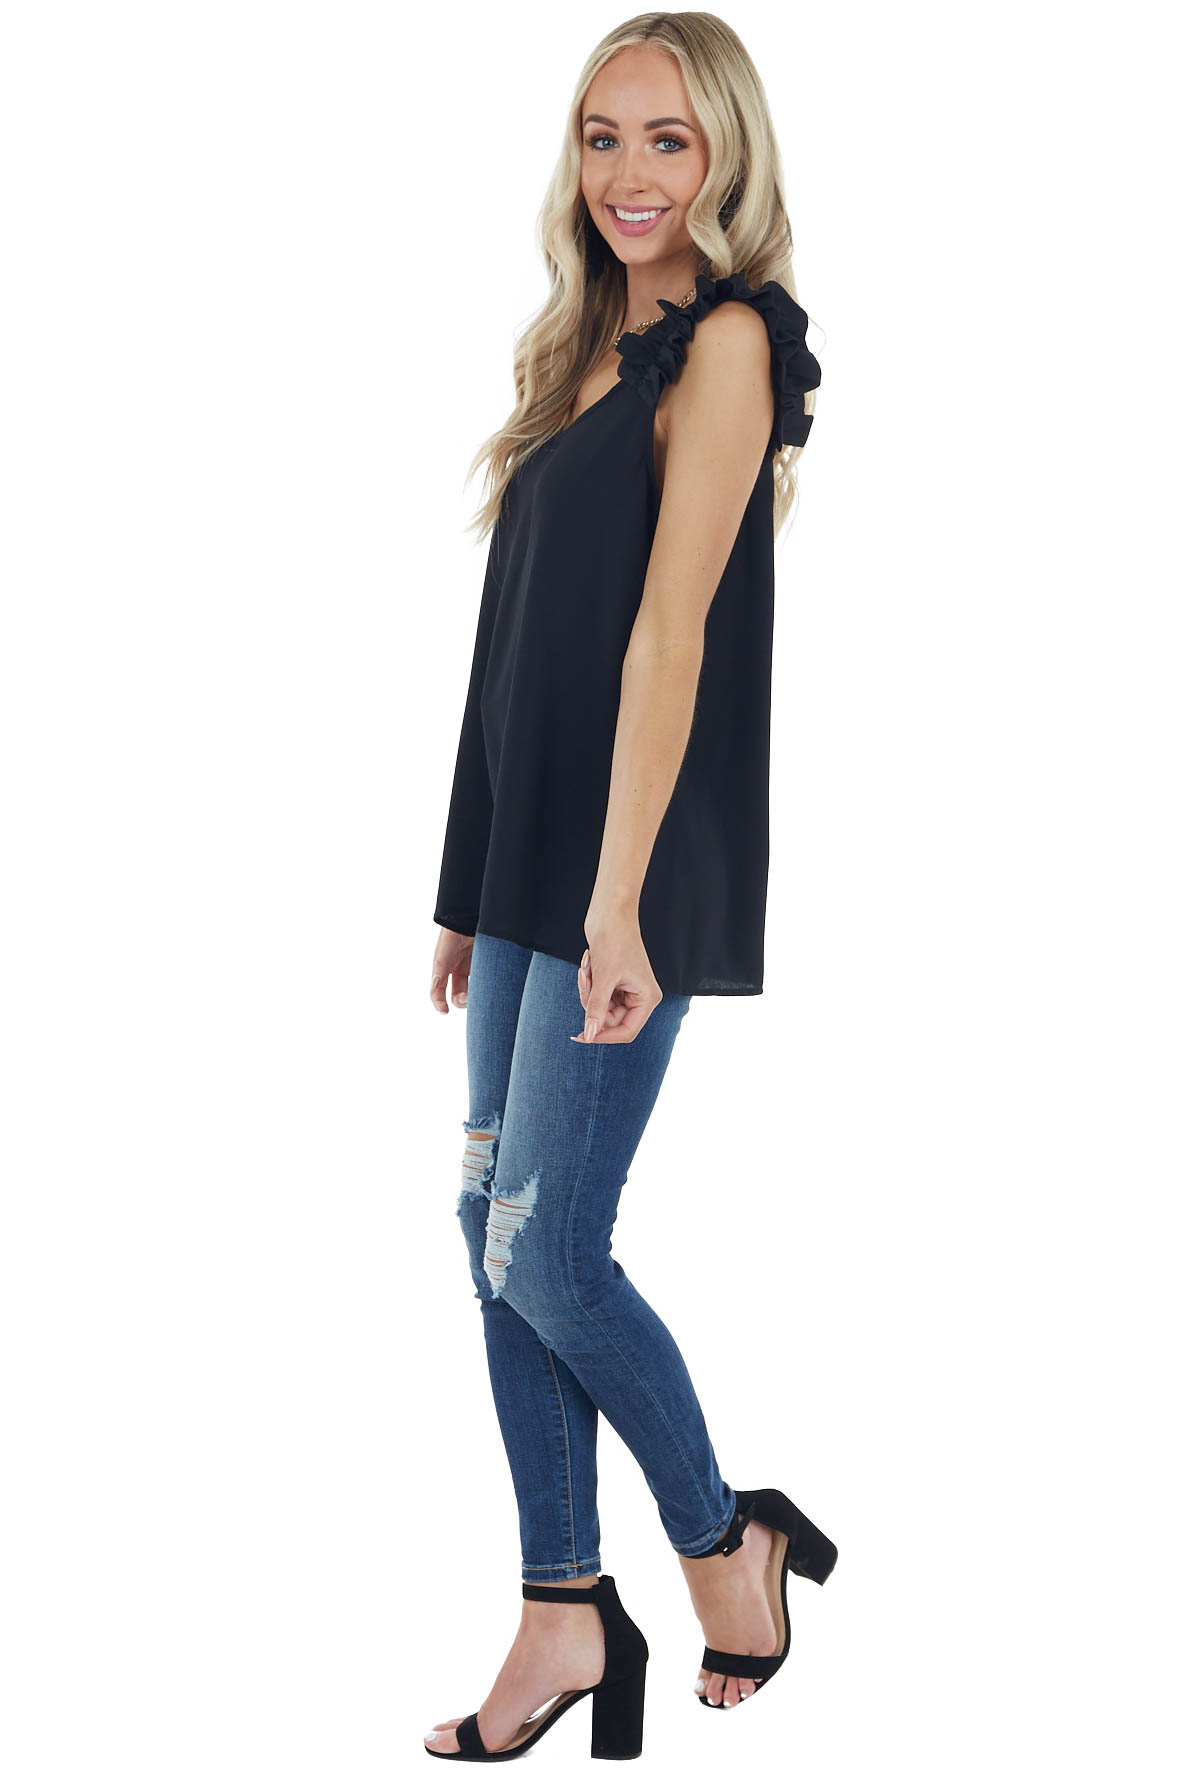 Black Textured Sleeveless Blouse with Ruffle Straps